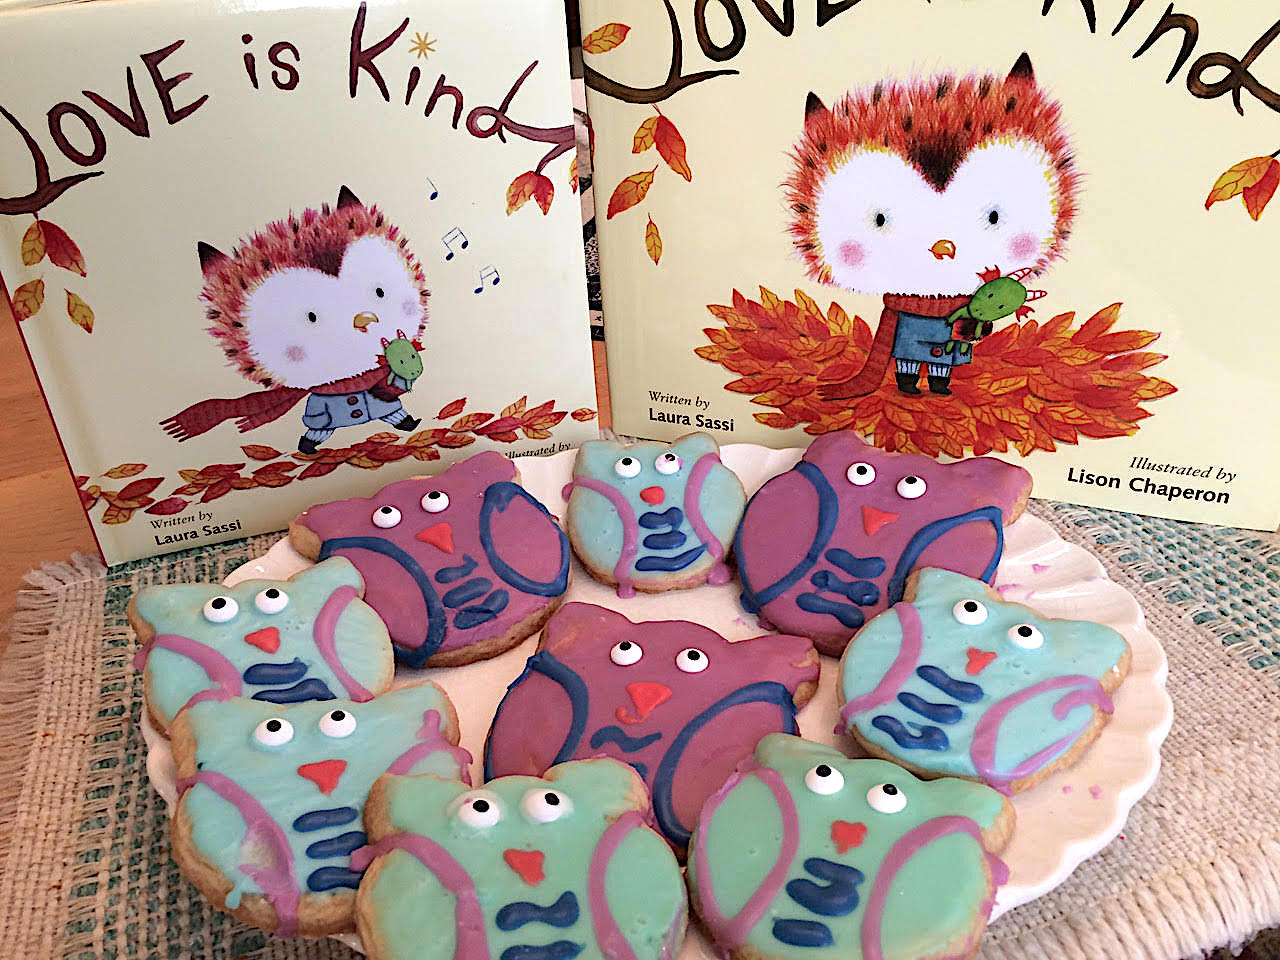 celebrate-picture-books-picture-book-review-love-is-kind-cookies